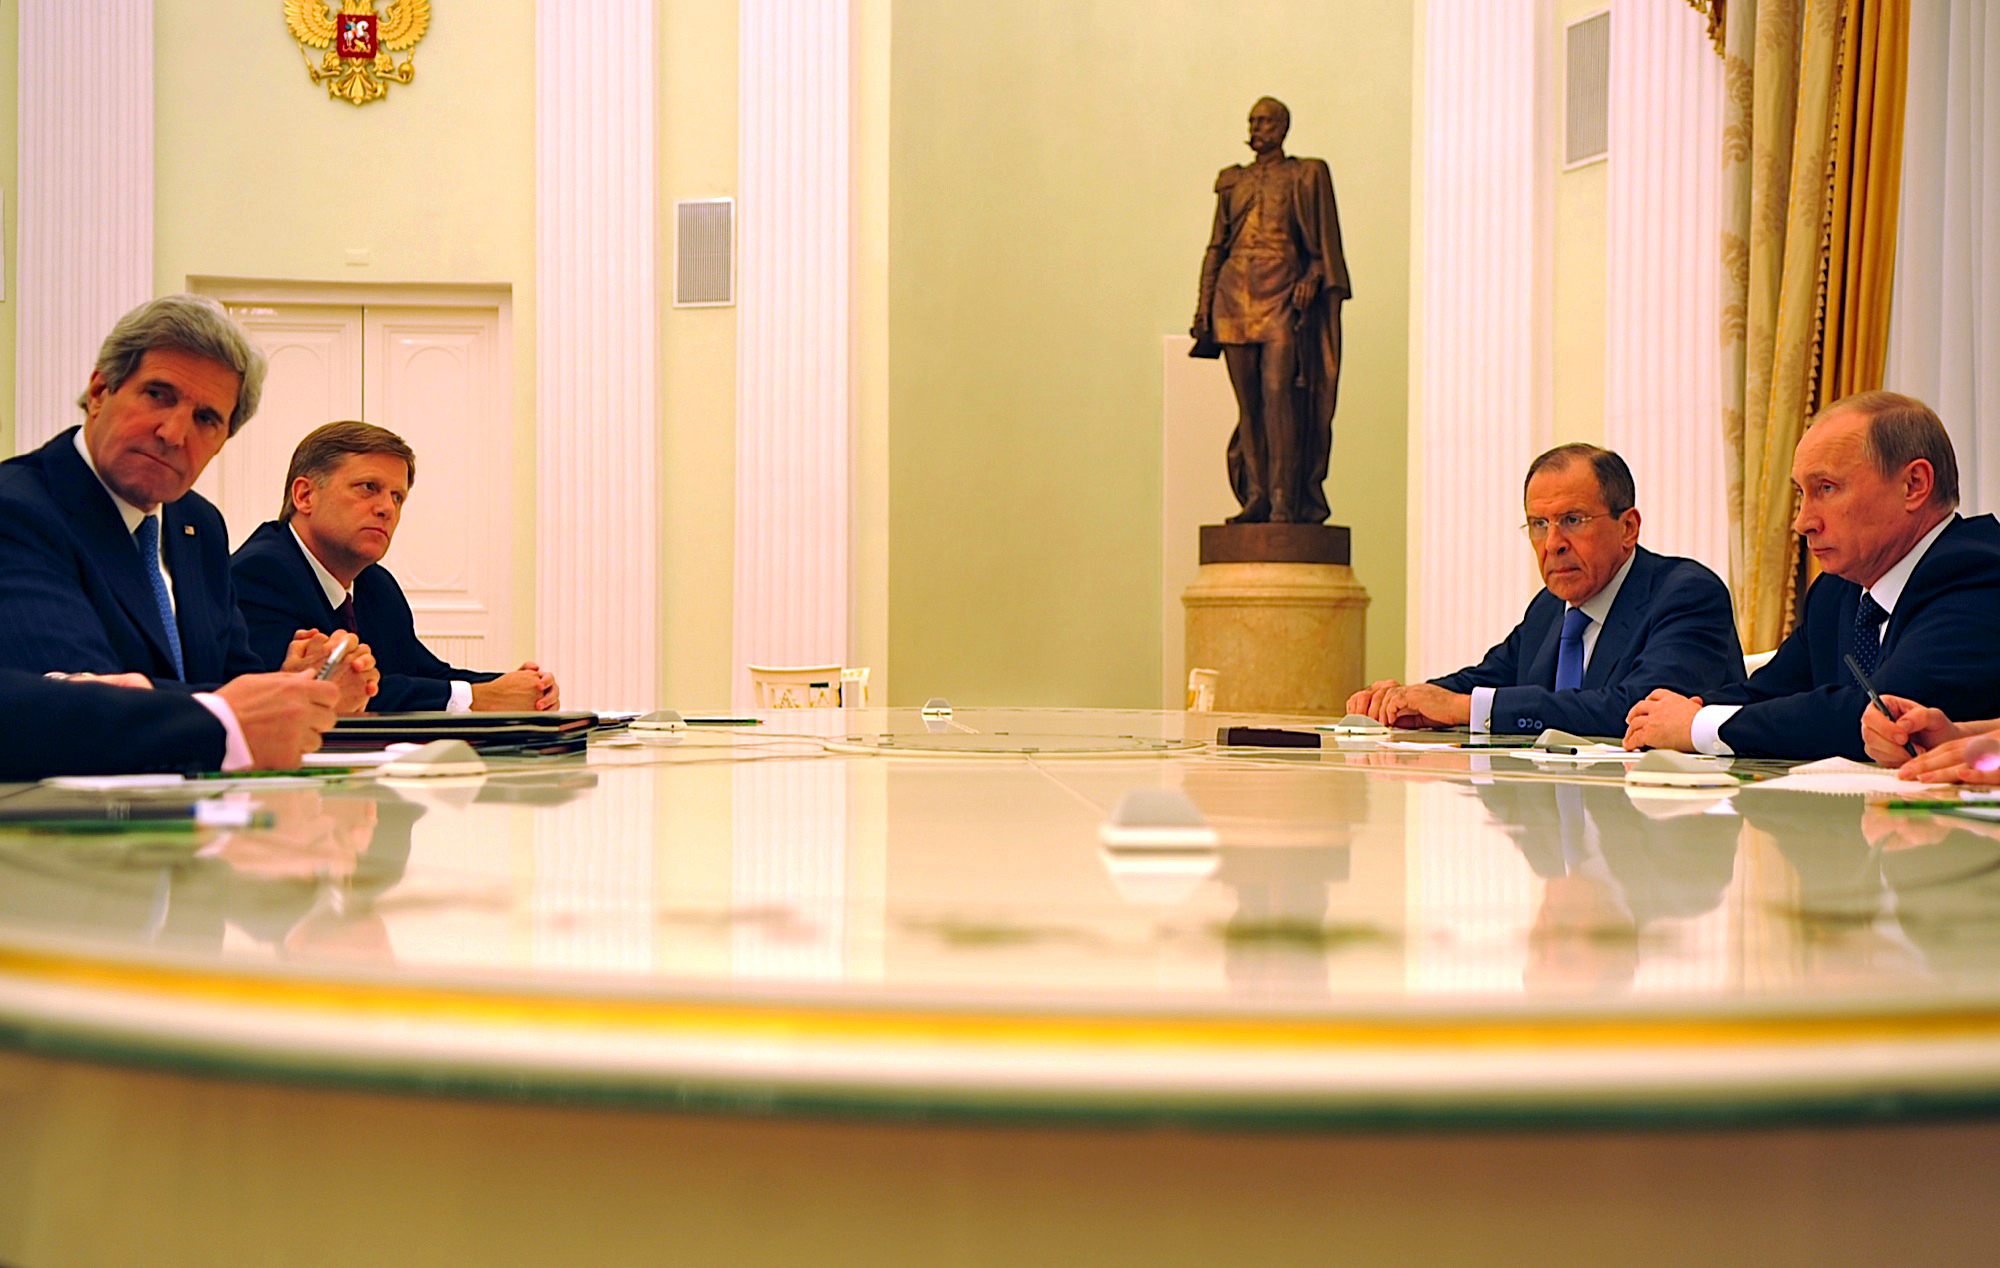 U.S. Secretary of State John Kerry with McFaul meeting Vladimir Putin and Russian Foreign Minister Sergey Lavrov in Moscow, Russia, on May 7, 2013. (State Department)